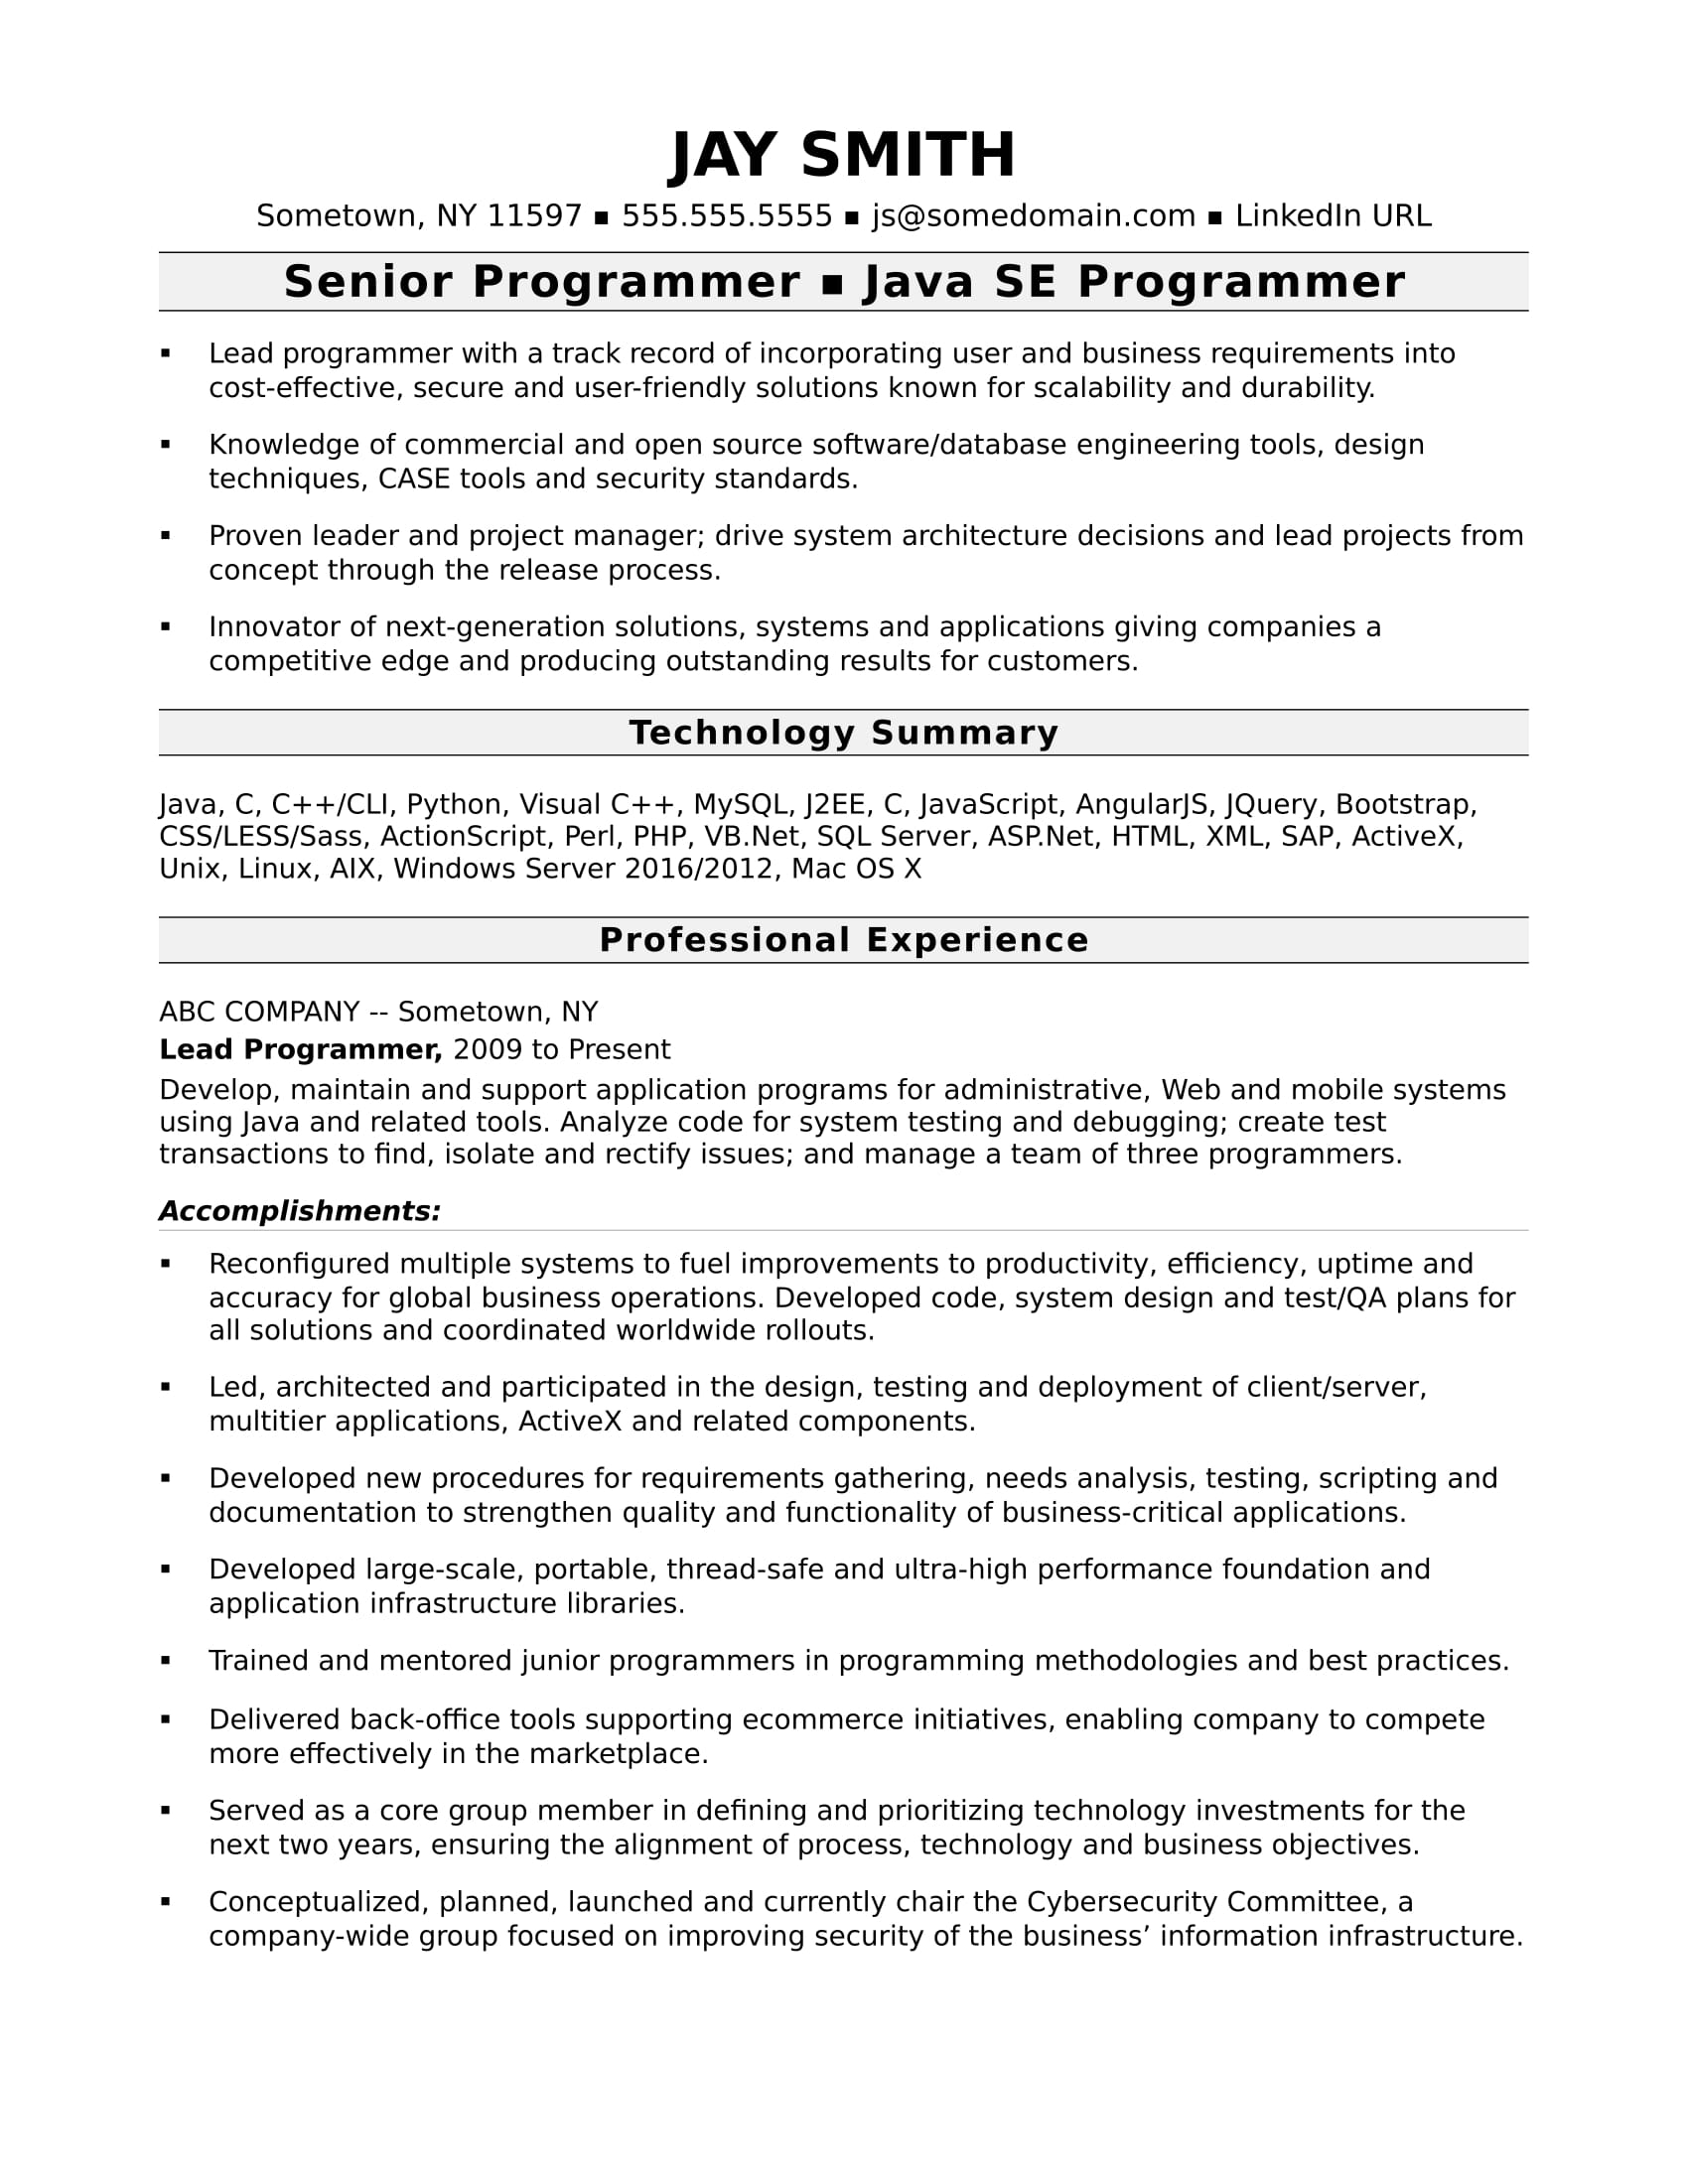 programmer resume template monster professional writing software computer experienced Resume Professional Resume Writing Software